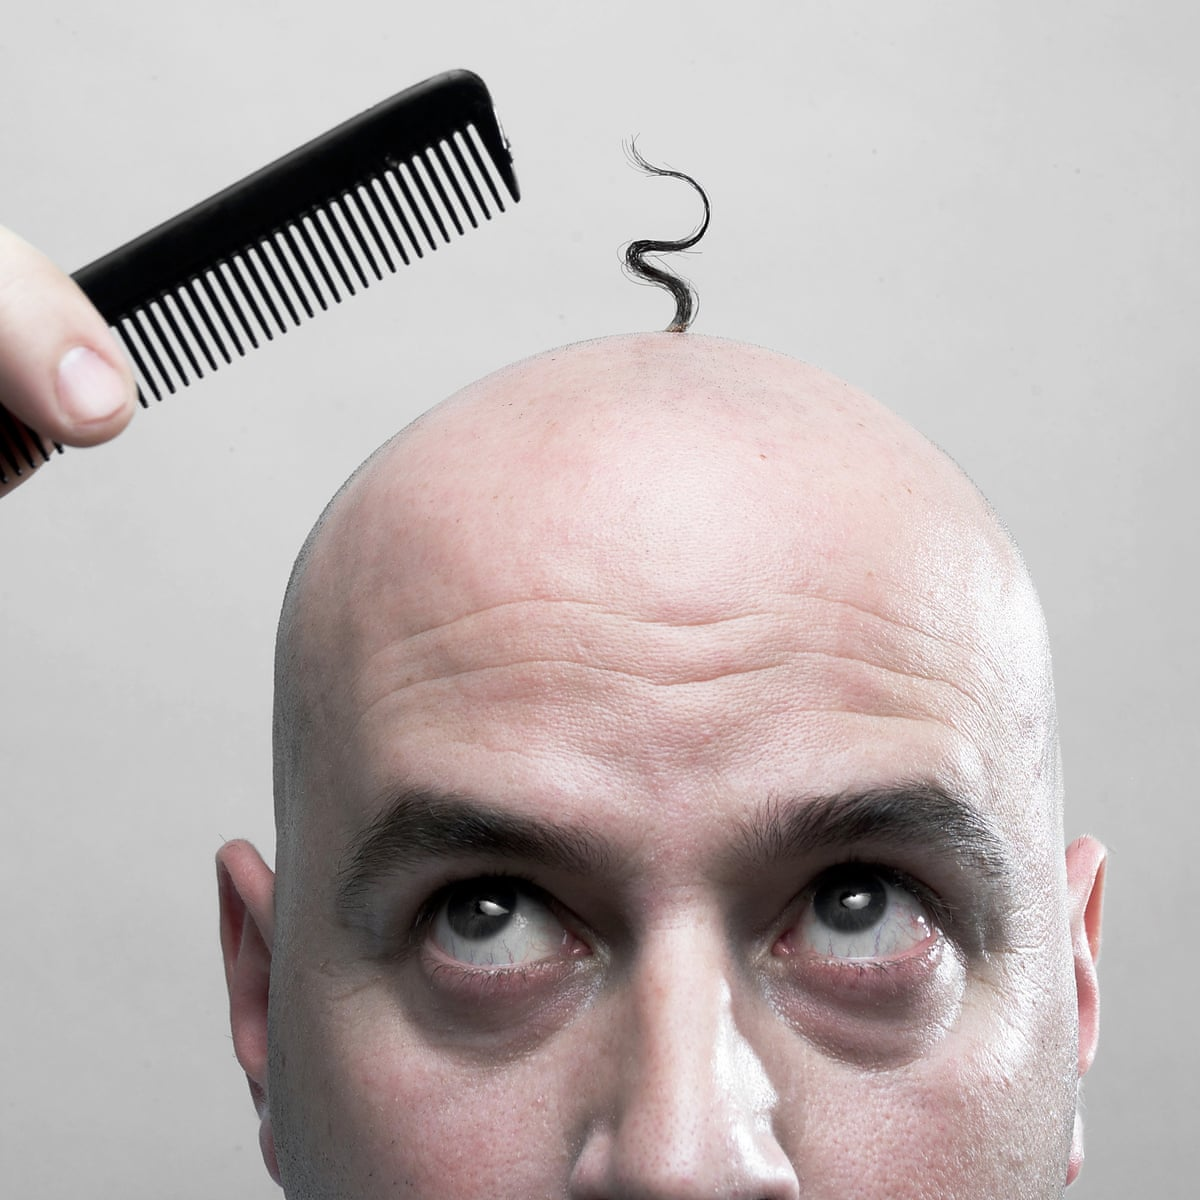 Someone Elses Love Letter - Google Books Result